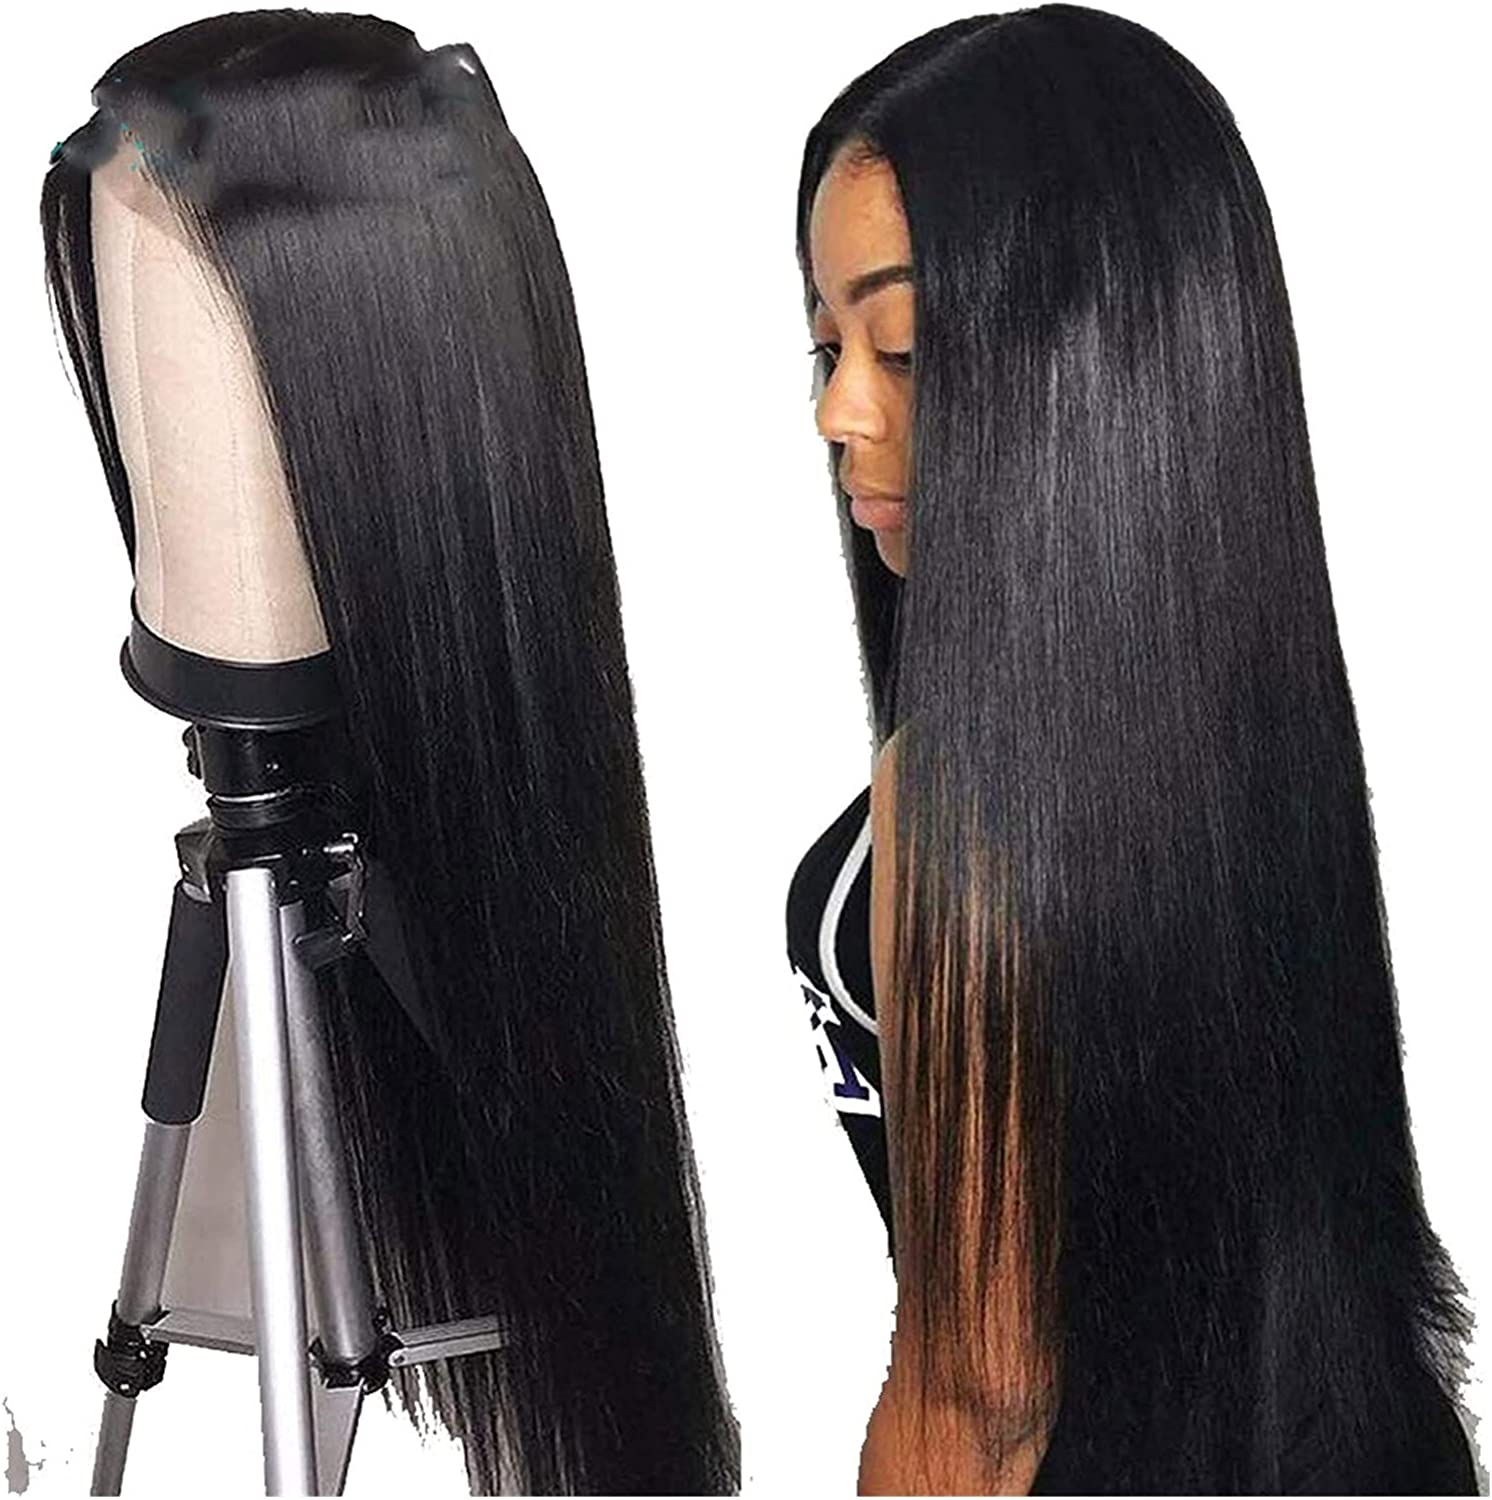 Lace Front Wig Chemical Fiber Easy to Mail order wear Long San Antonio Mall Hair Straight